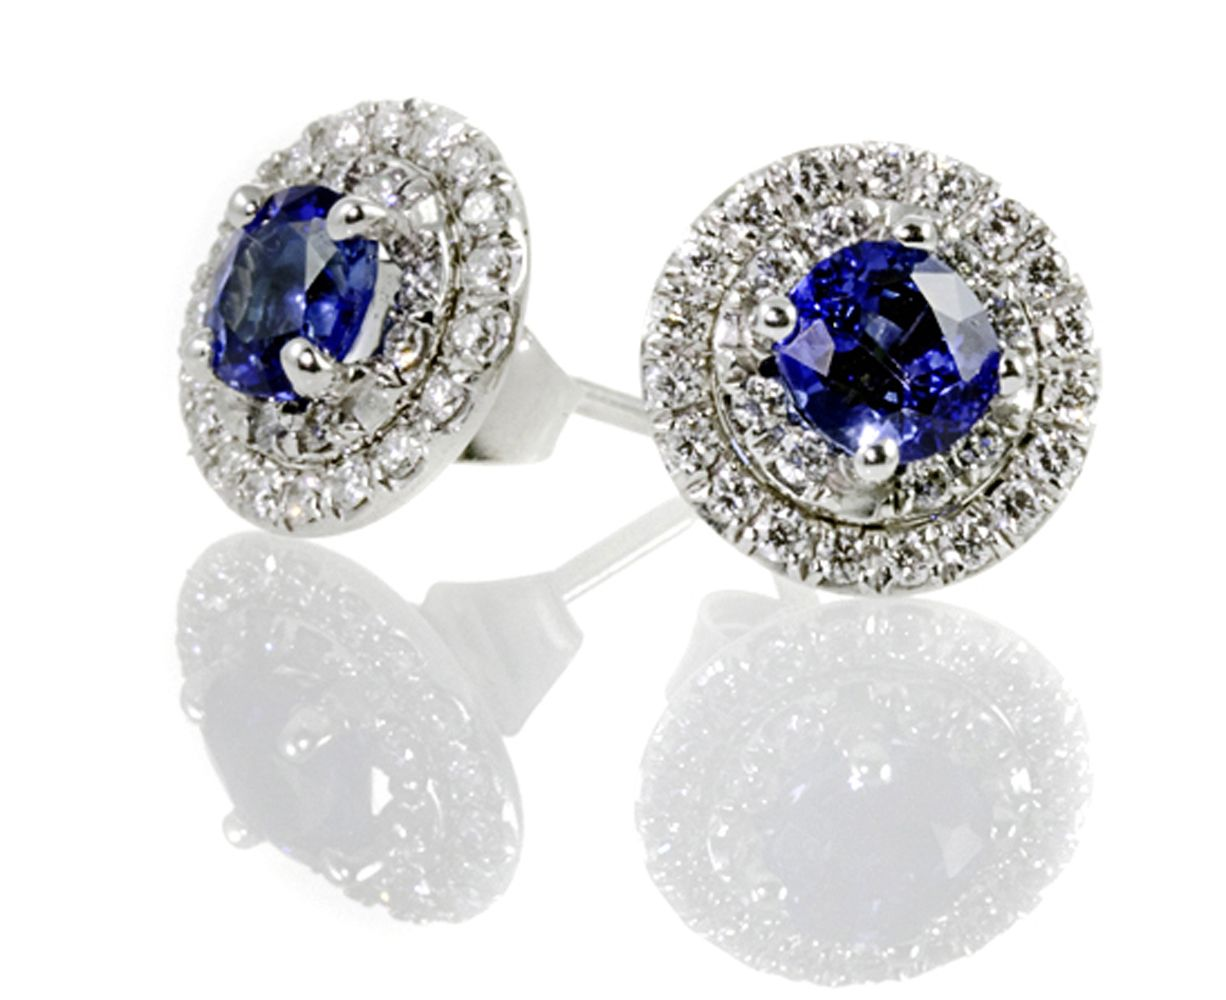 Blue Sapphire Diamond Stud Earrings See More Amazing Jewelry At  Diamondscape! #jewelry